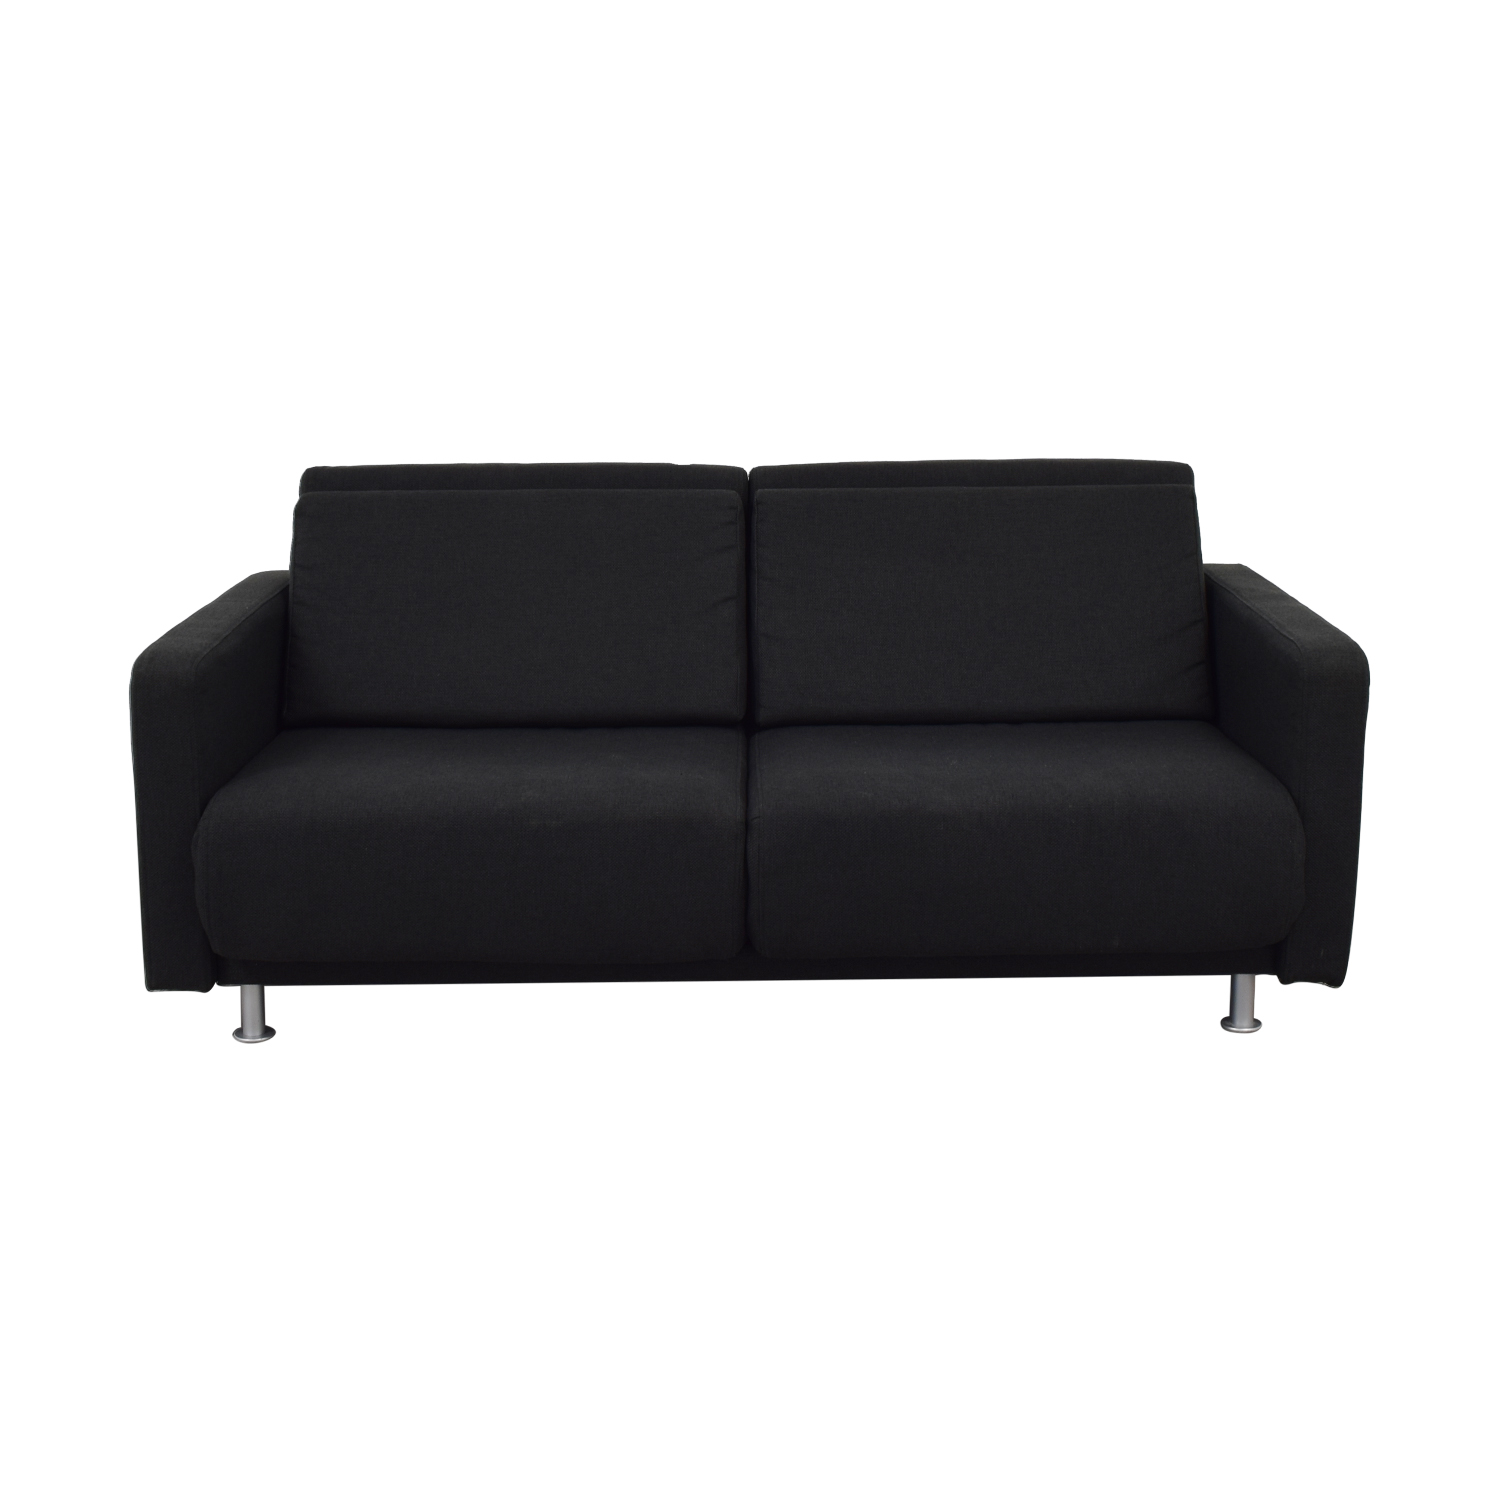 Excellent 49 Off Boconcept Boconcept Melo 2 Navy Convertible Sofa Sofas Home Interior And Landscaping Dextoversignezvosmurscom